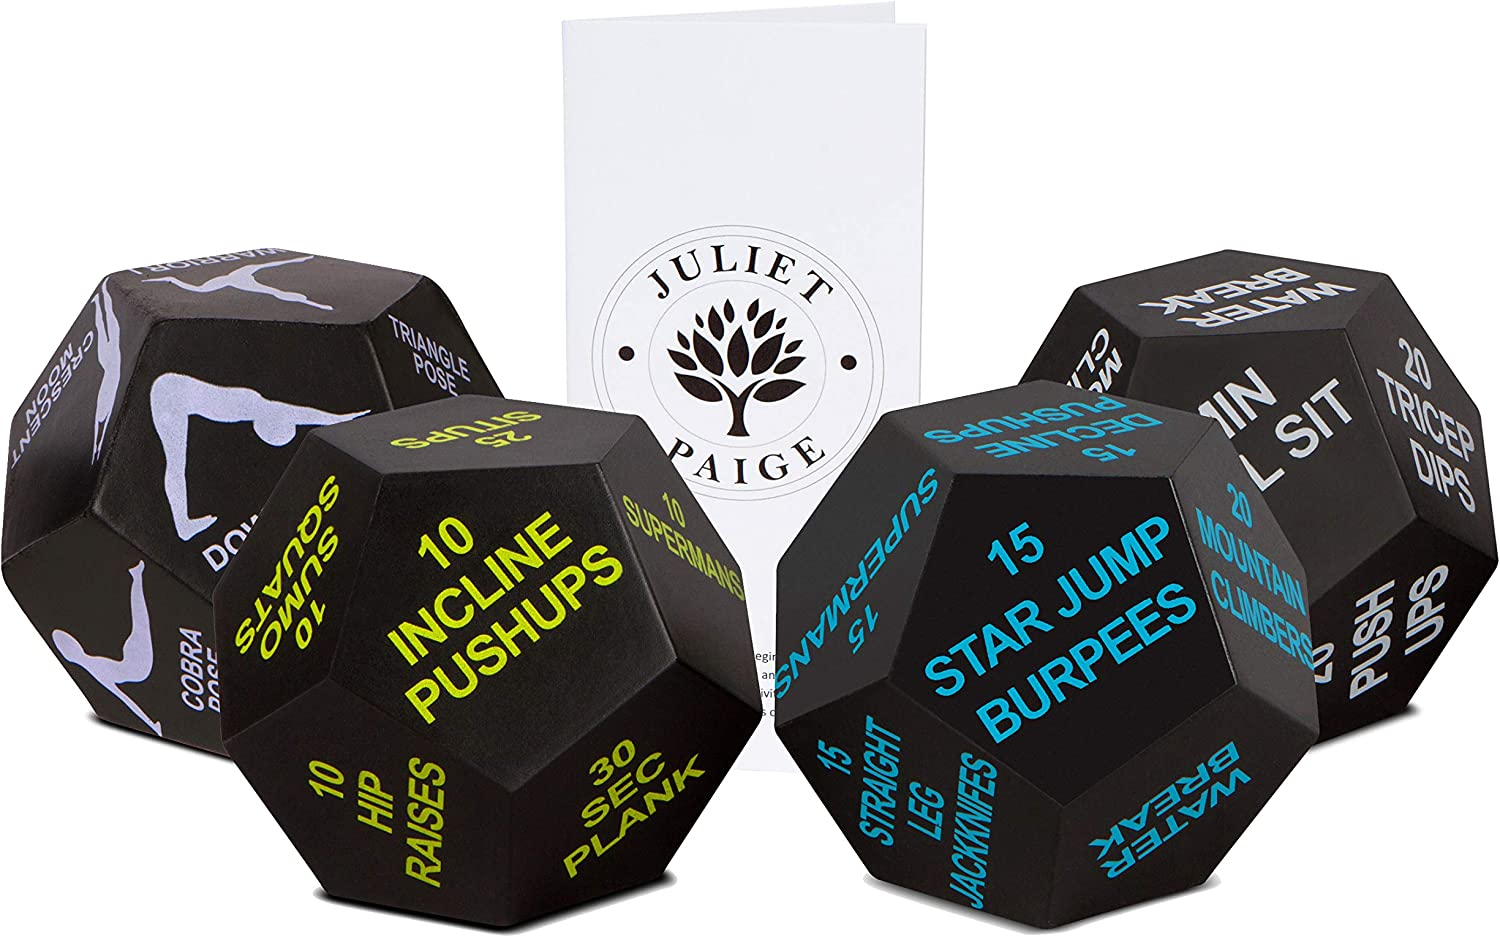 Exercise Dice for Home Workouts, Fitness, Yoga, and Sports Plus Booklet with Exercise Illustrations (4 Dice Bundle)